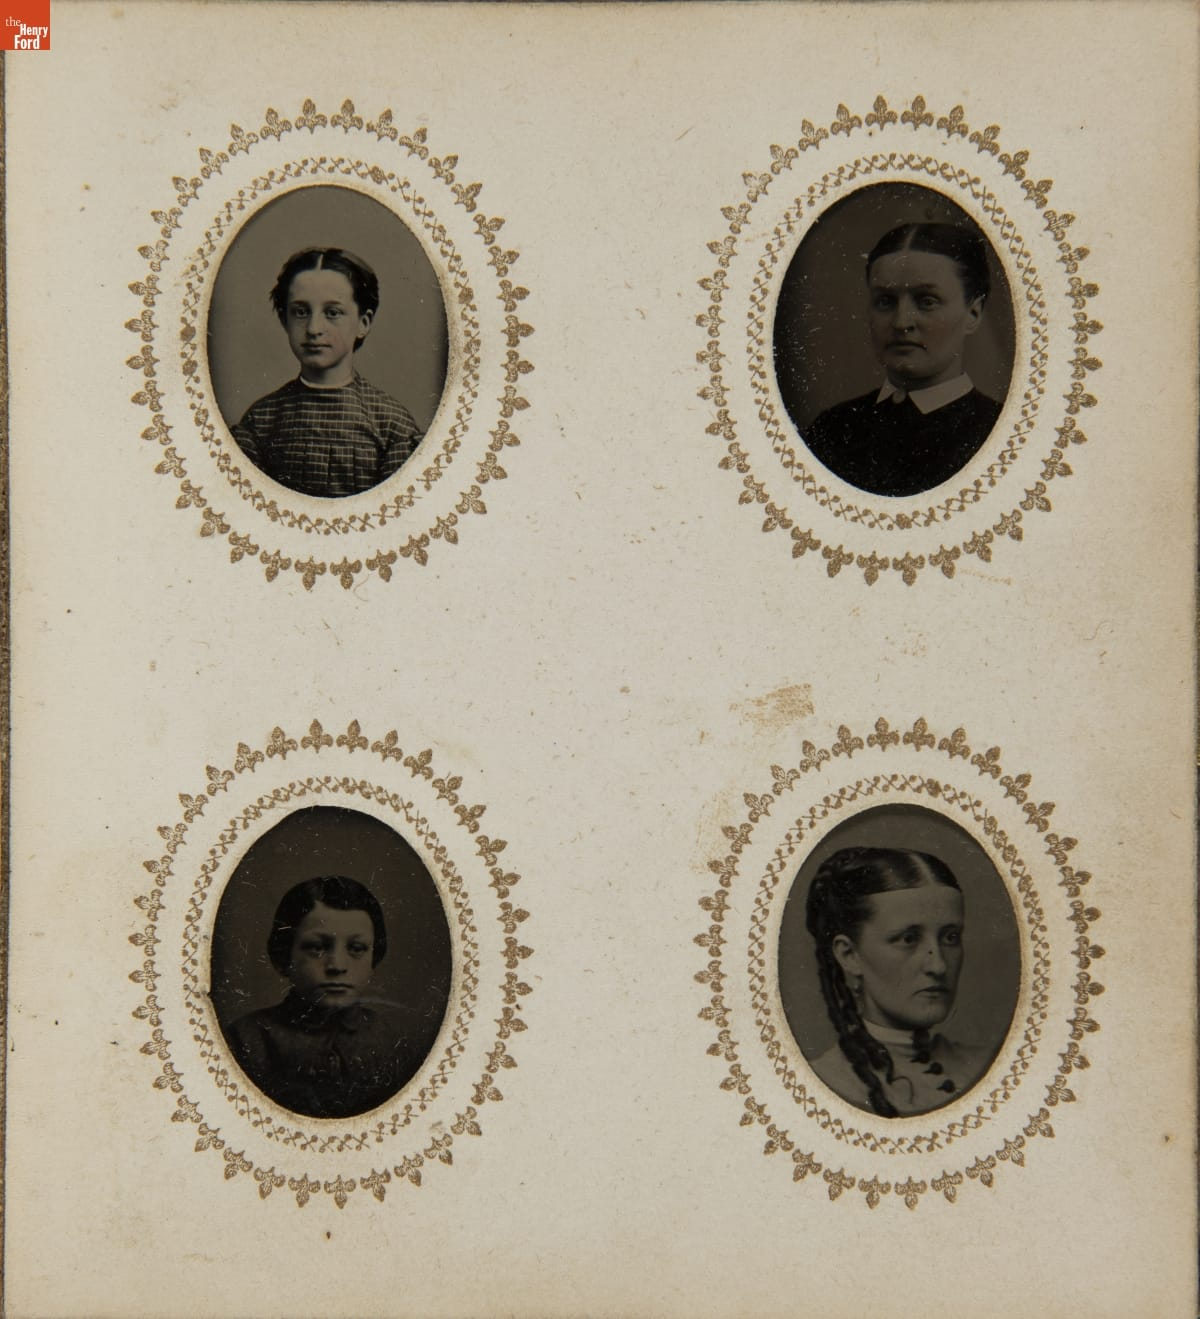 Page containing four oval head-and-shoulder portraits with decorative borders around each portrait